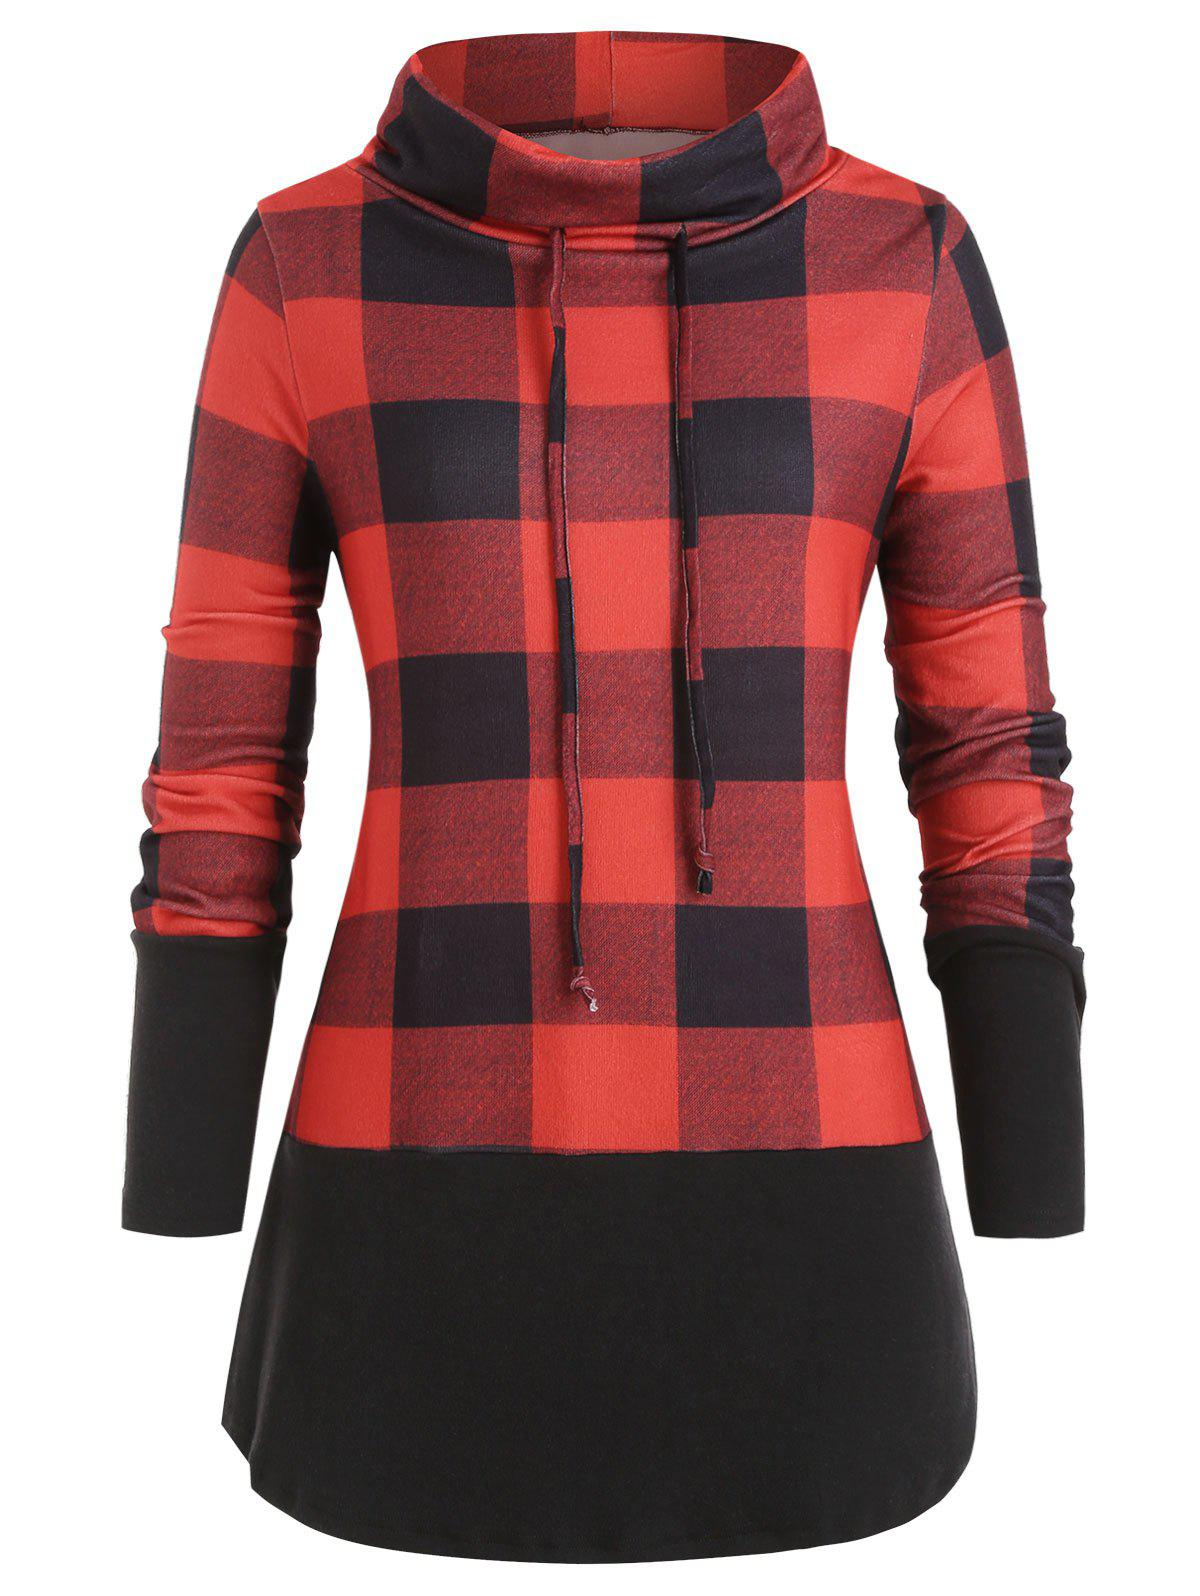 Trendy Plus Size Cowl Neck Brushed Plaid Tunic Sweatshirt